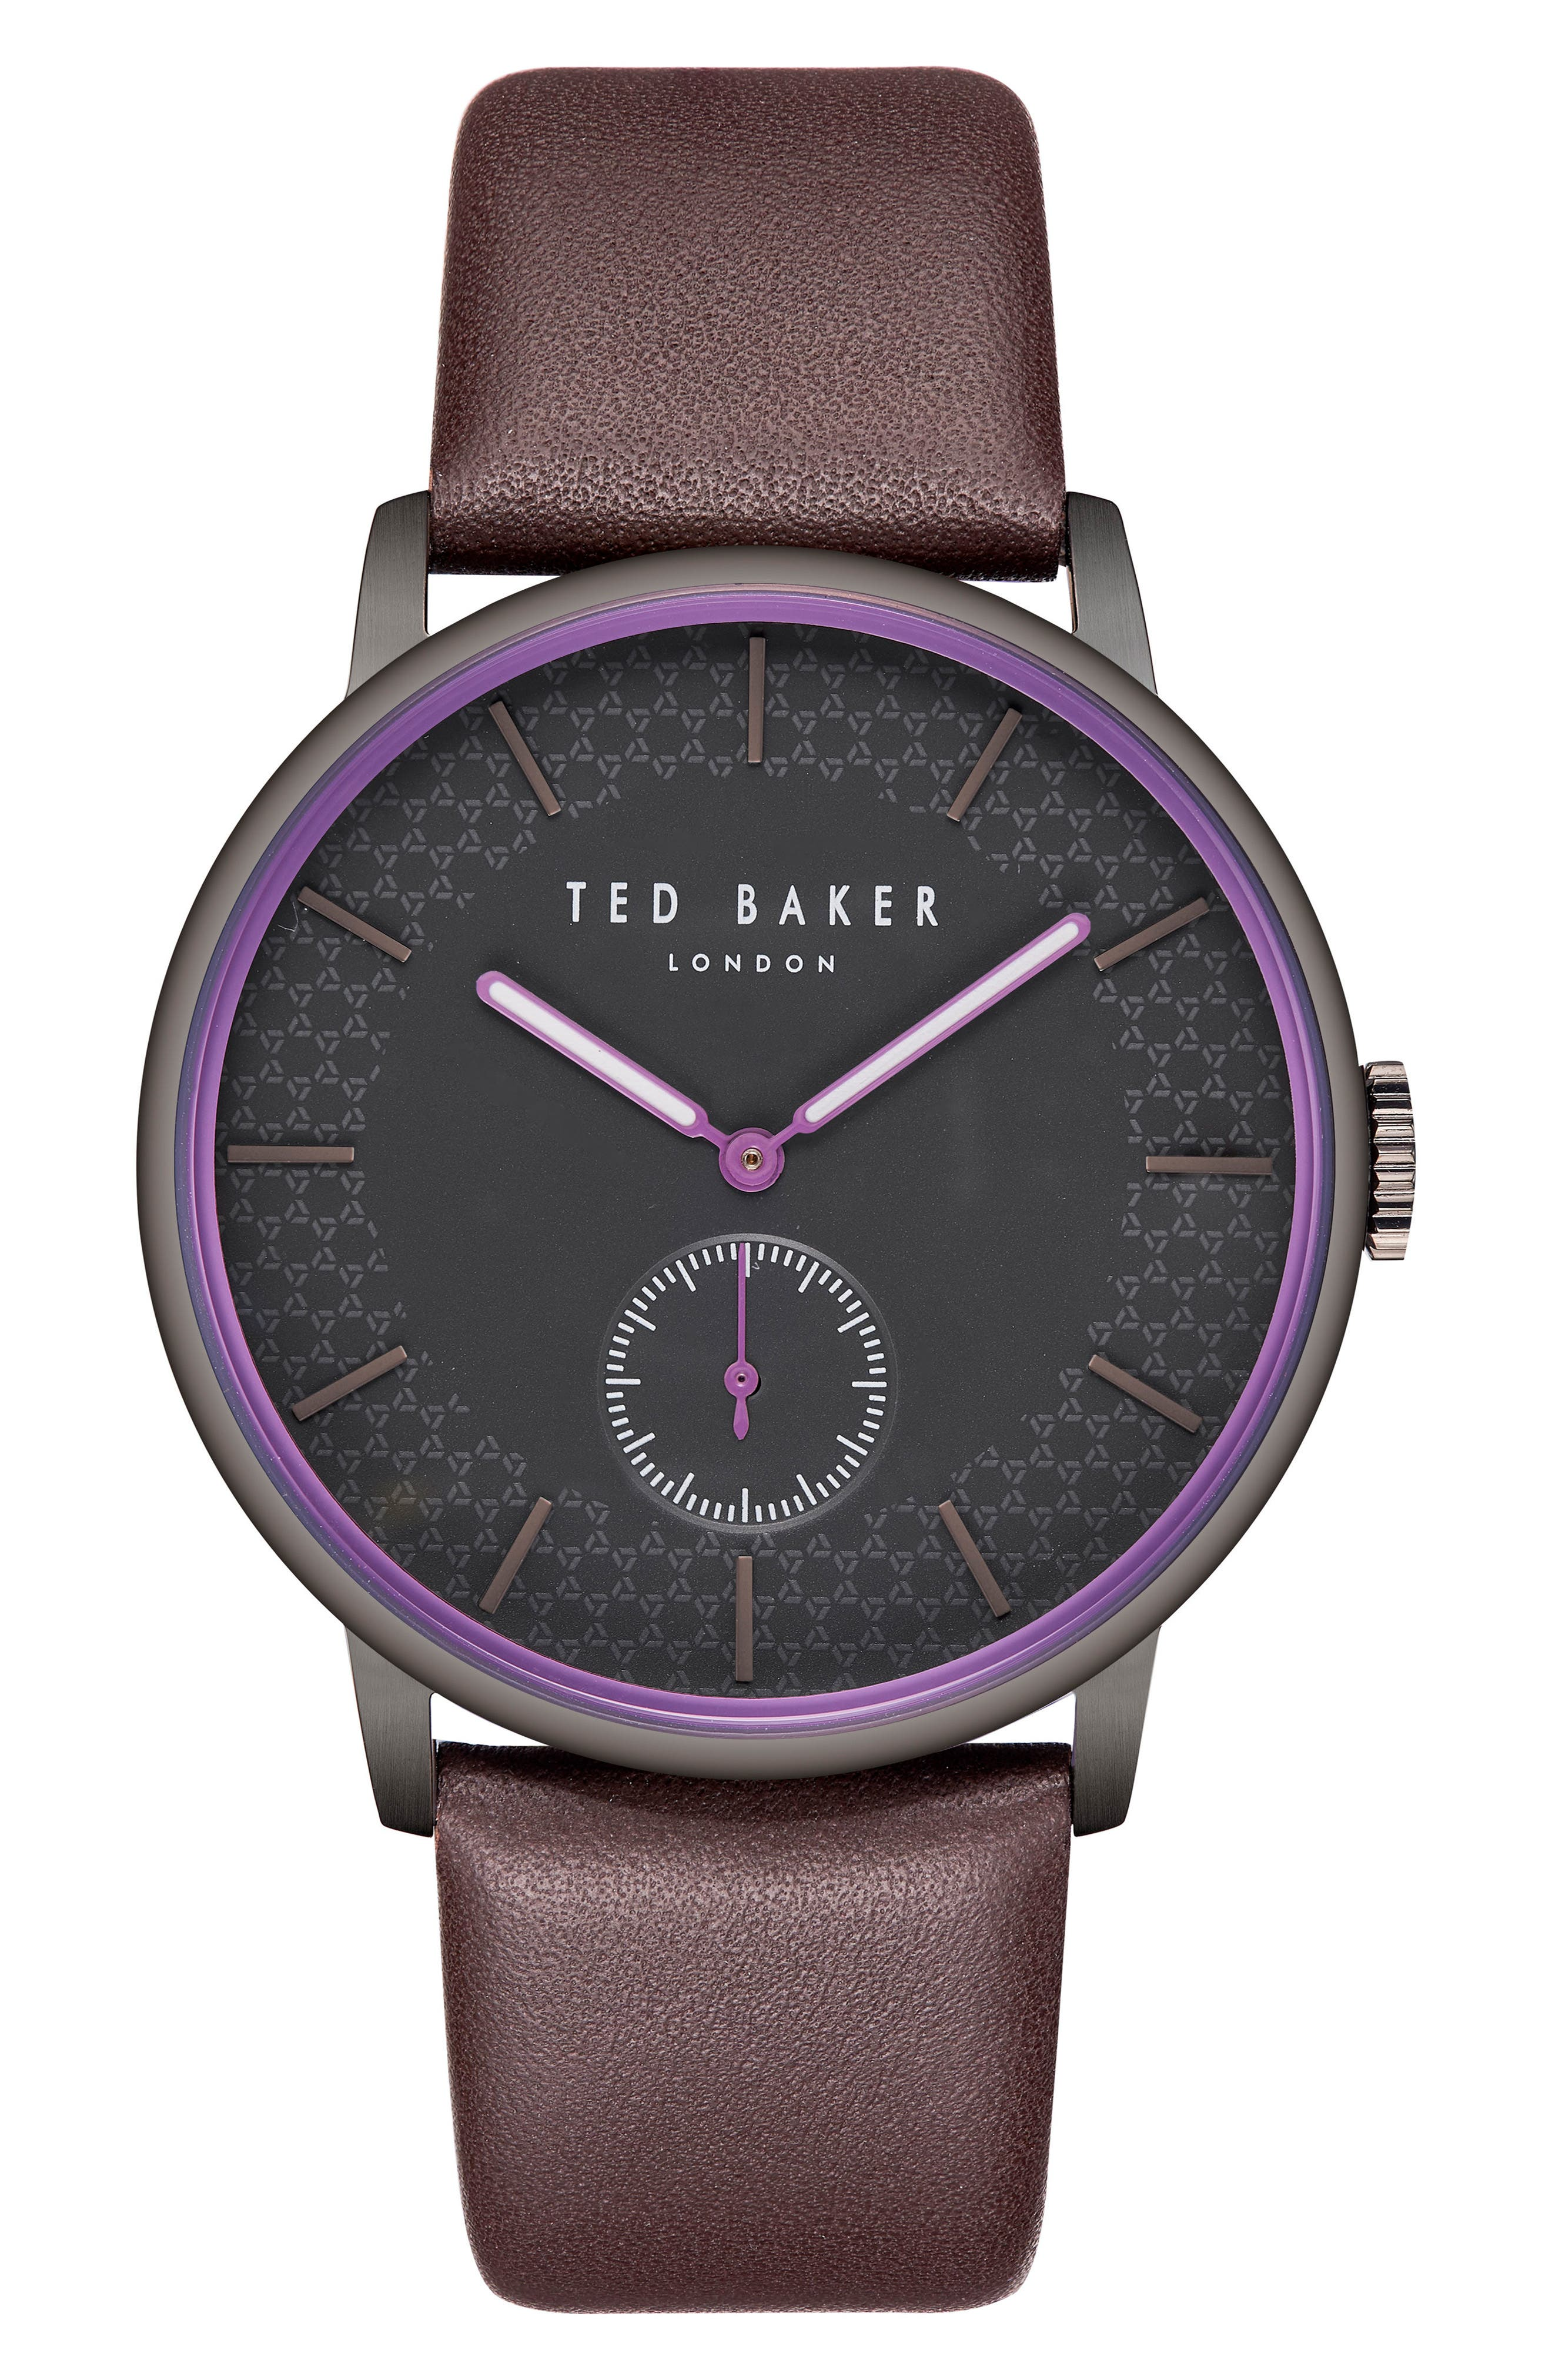 3e06a1cd0 Men's Ted Baker London Watches | Nordstrom